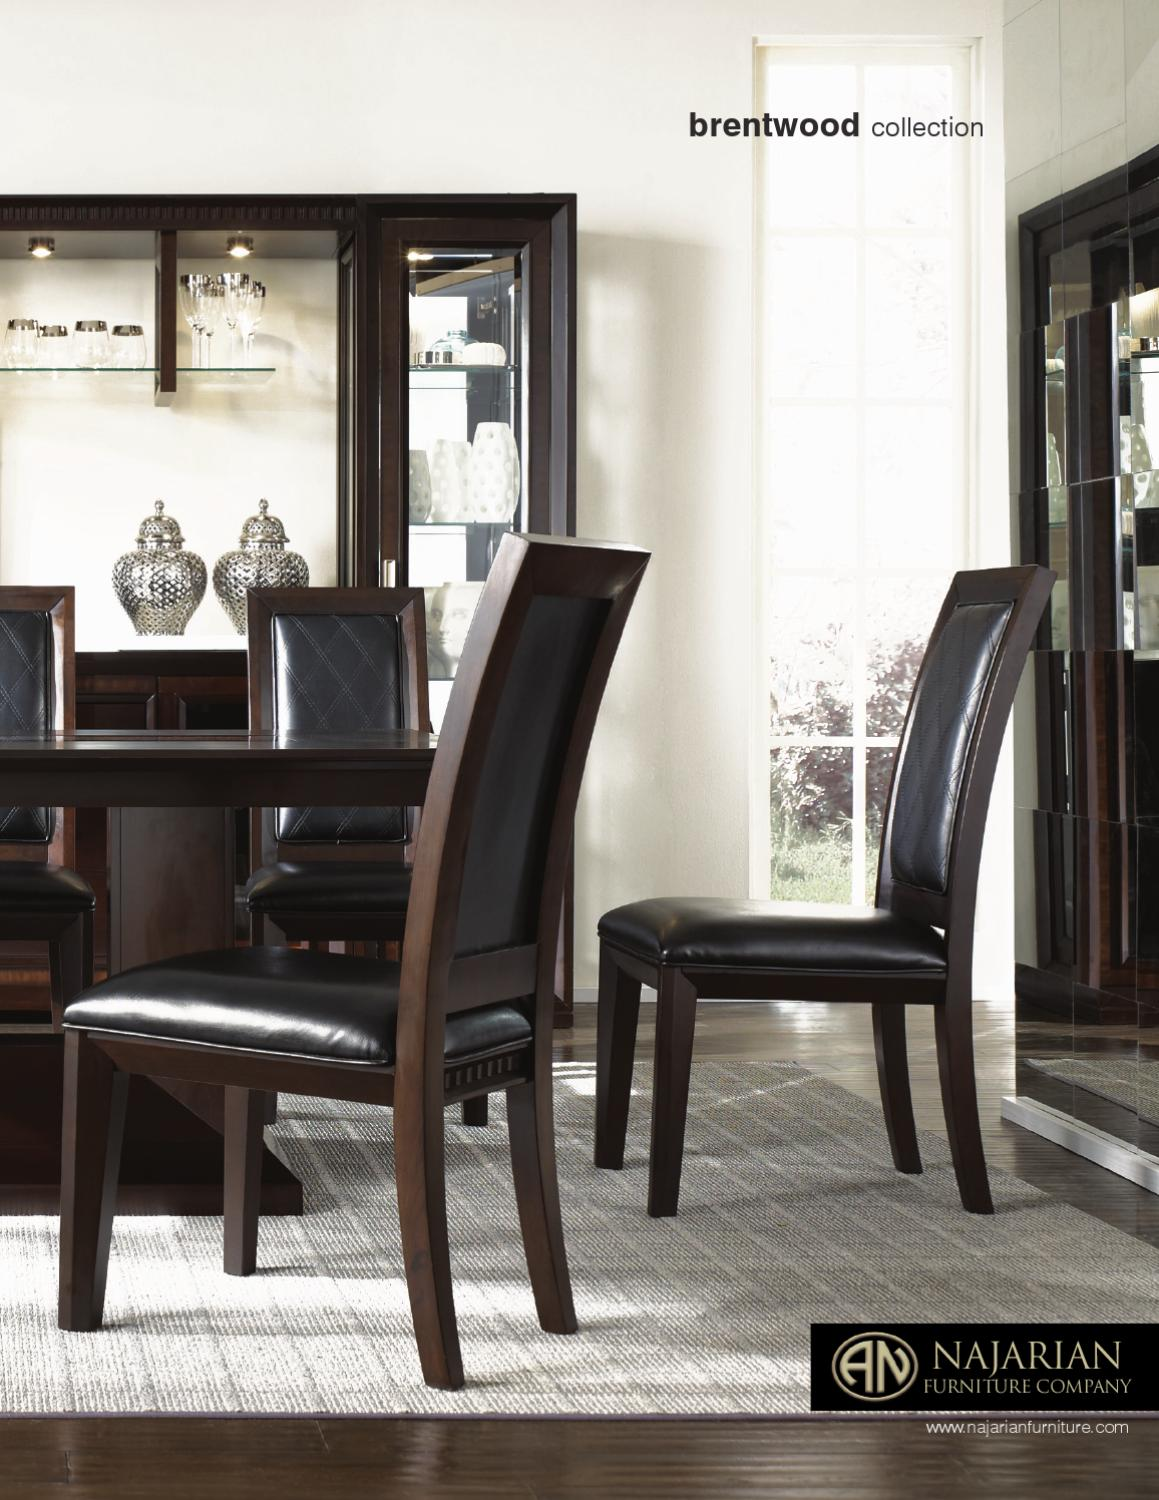 Brentwood Cushions For Dining Room Chairs